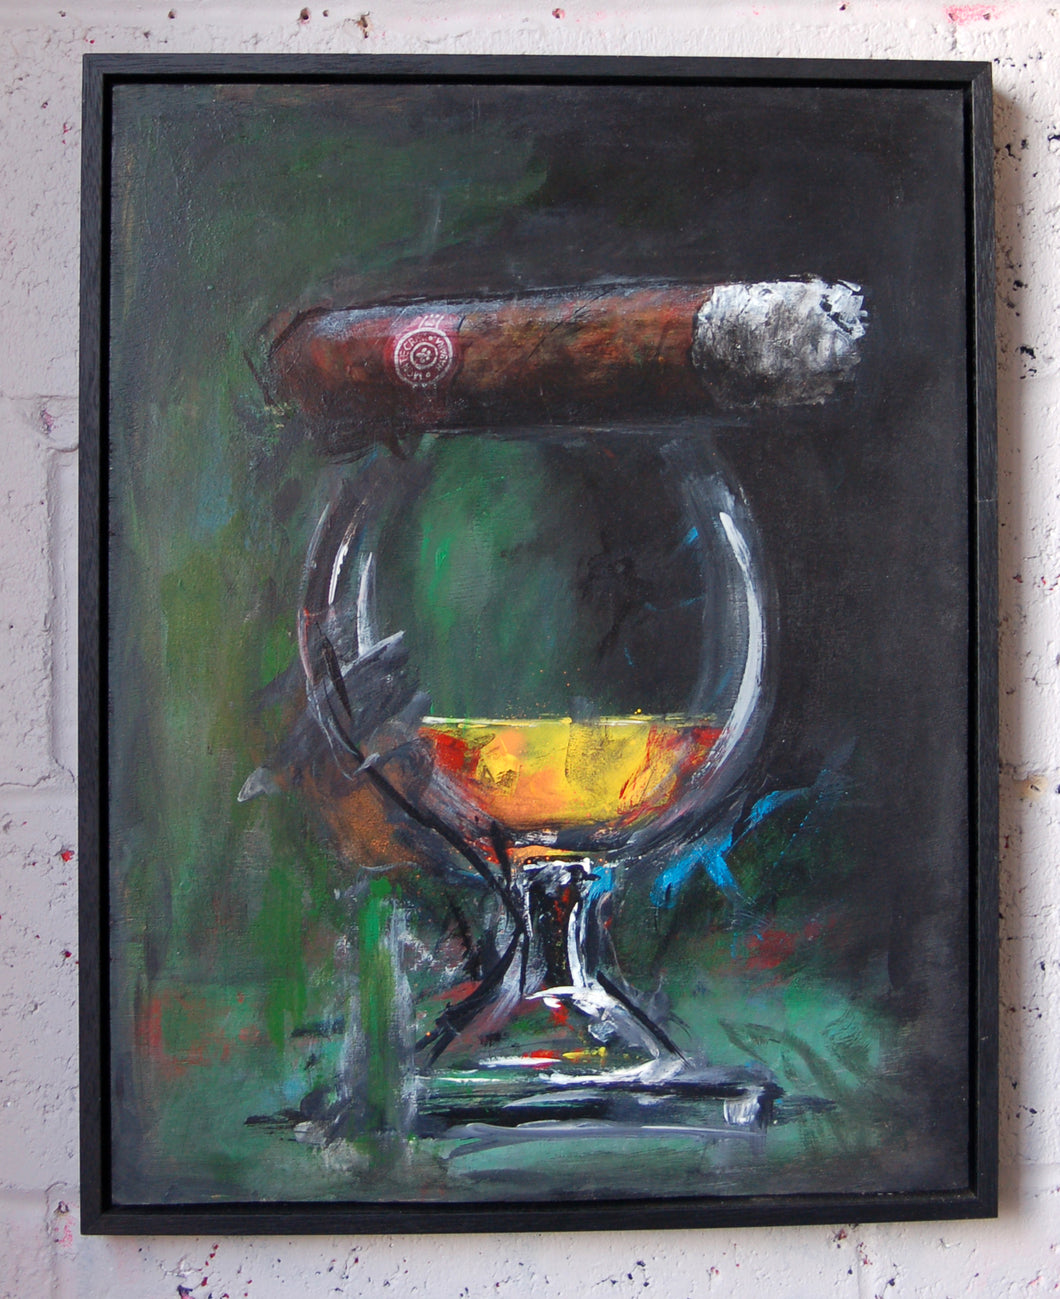 Original mixed media art on wood panel, framed, depicting a glass of brandy and a cigar